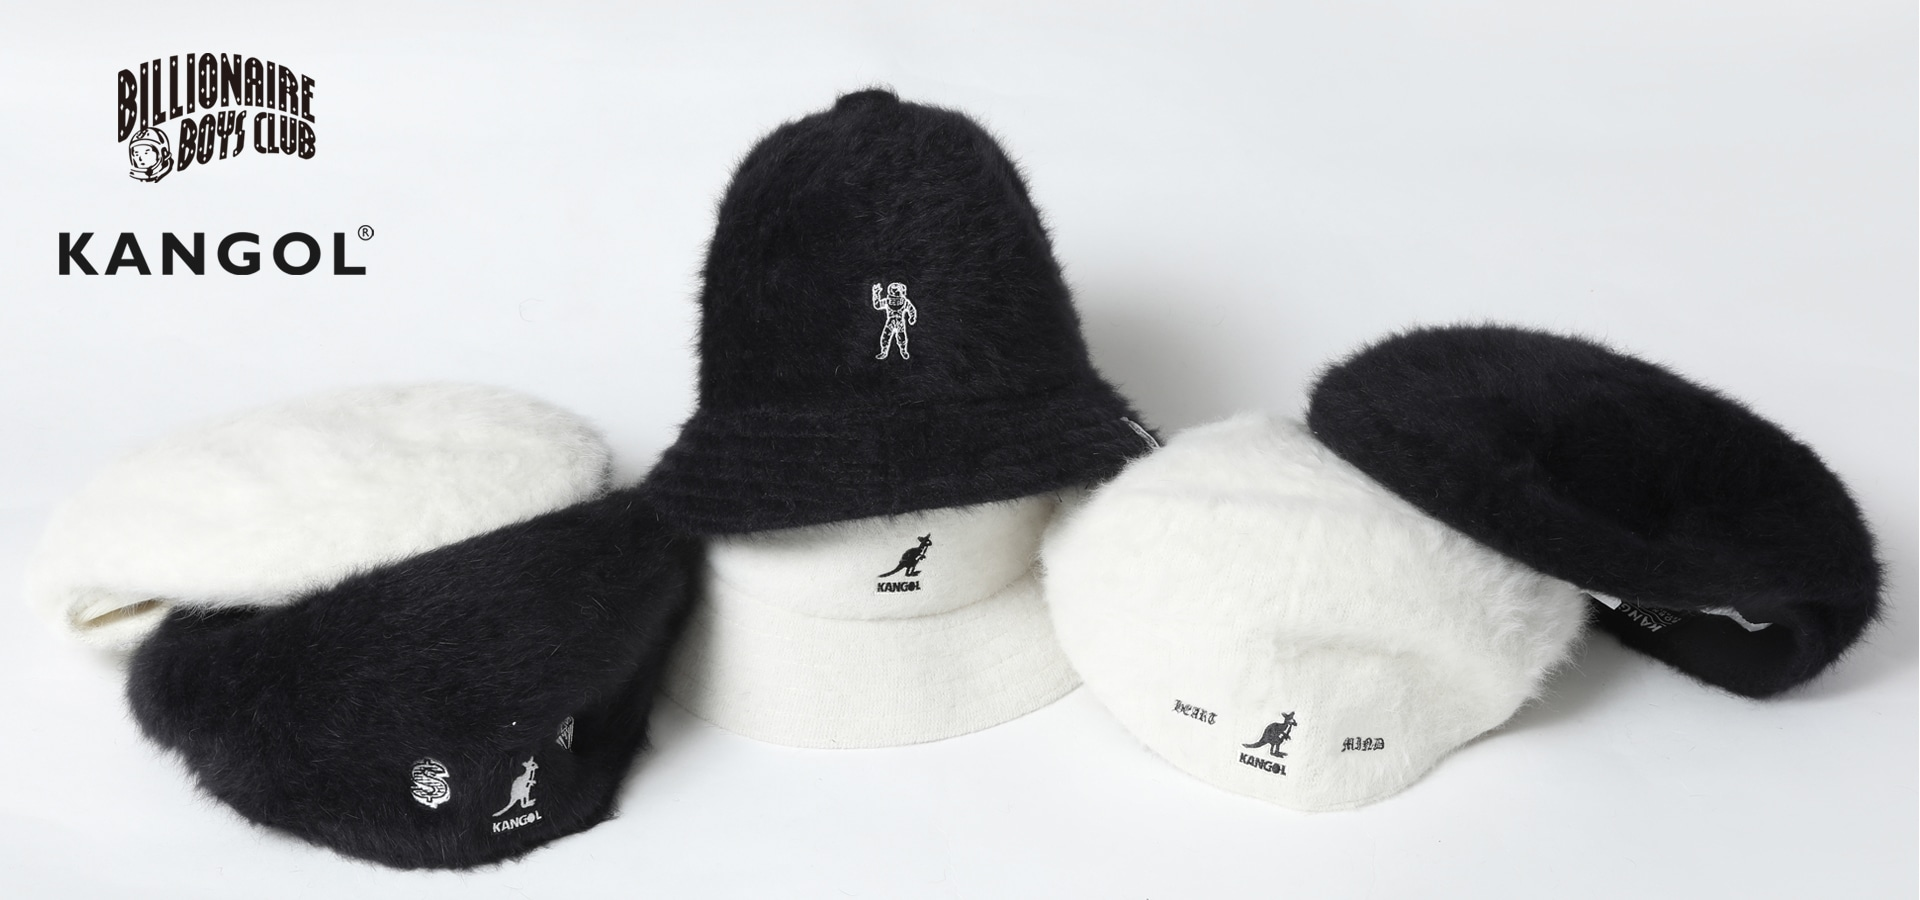 BILLIONAIRE BOYS CLUB x KANGOL